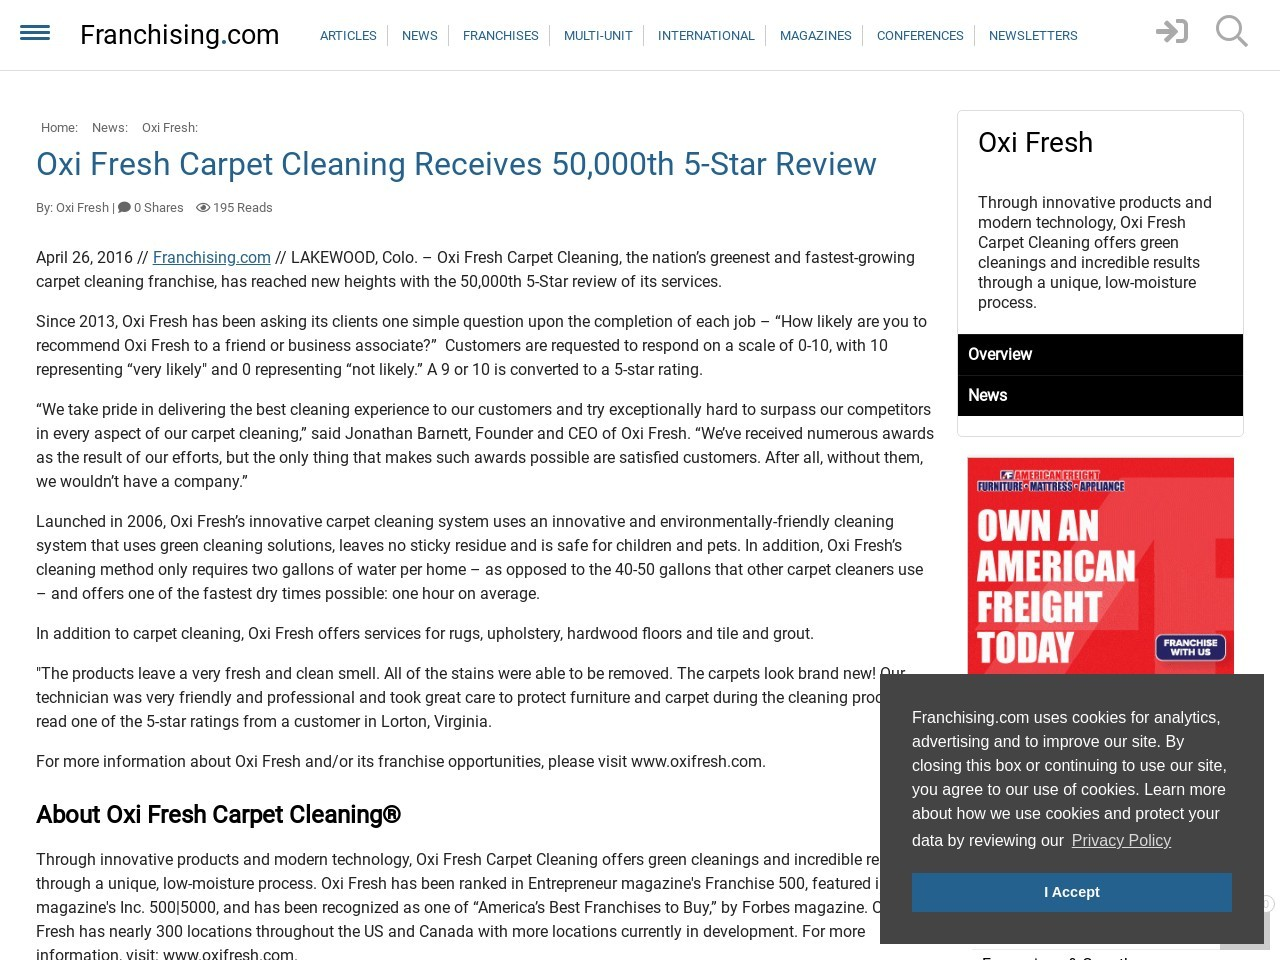 Oxi Fresh Carpet Cleaning Receives 50000th 5-Star Review